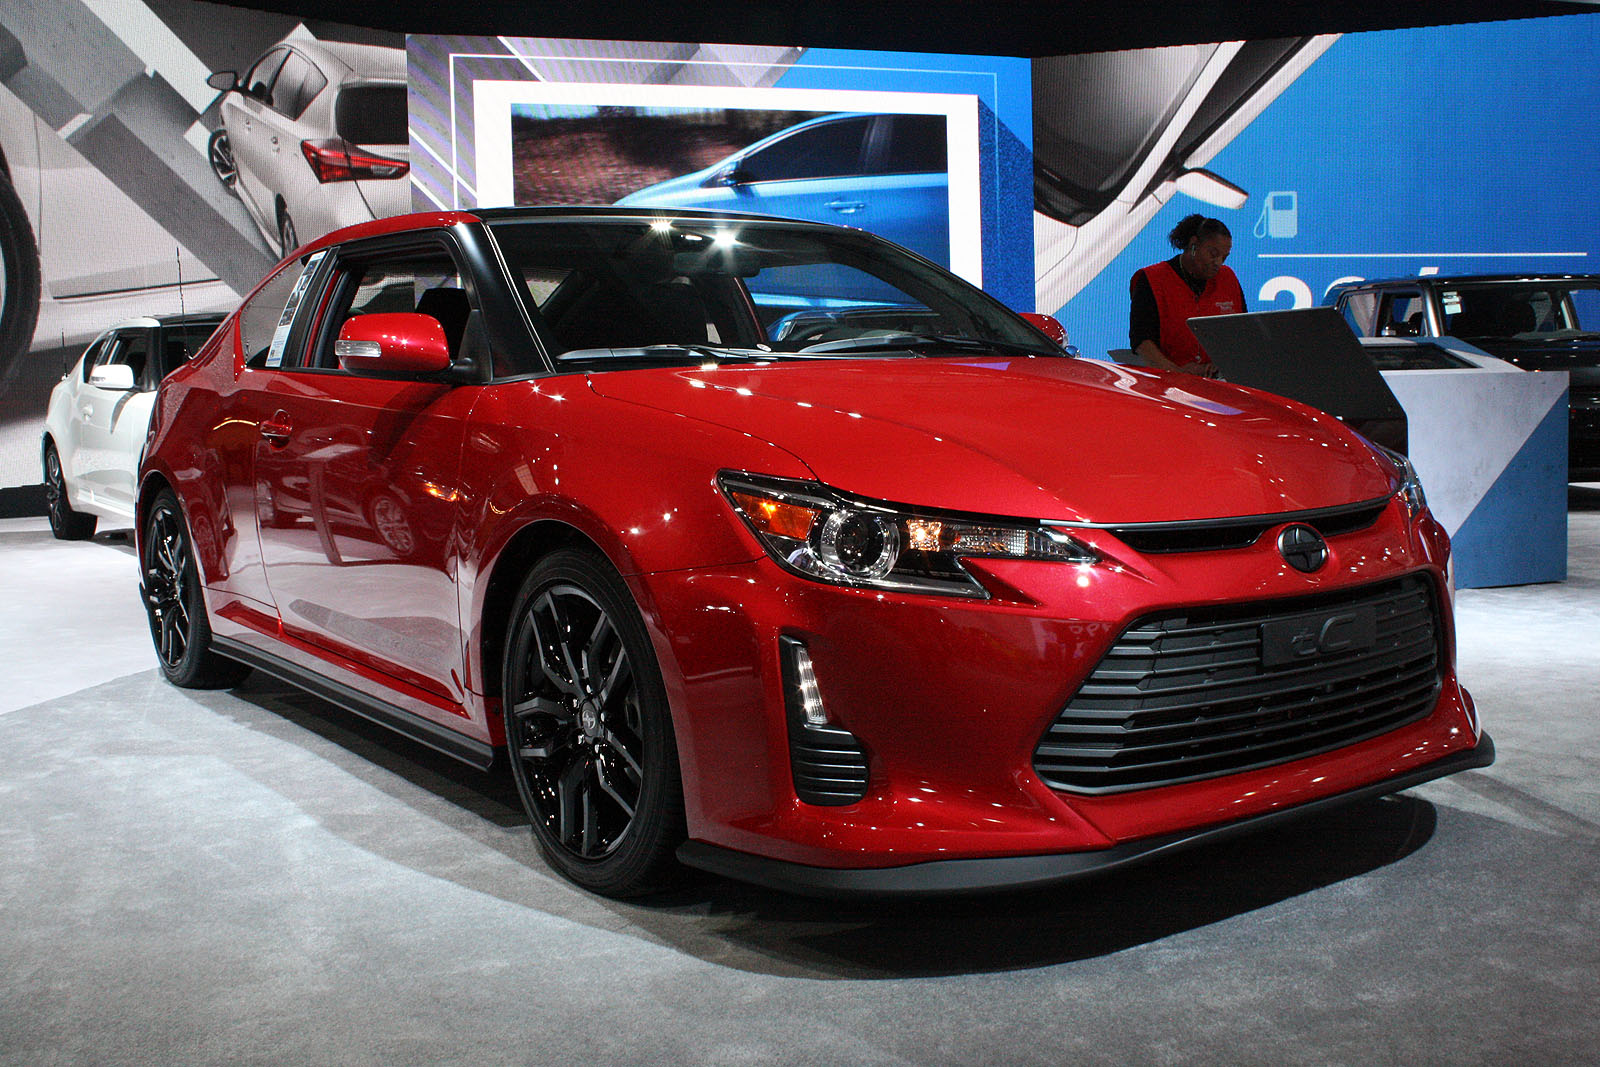 Scion scion tc horsepower : 2017 Scion tC Release Series 10.0 Bids Farewell to Brand ...